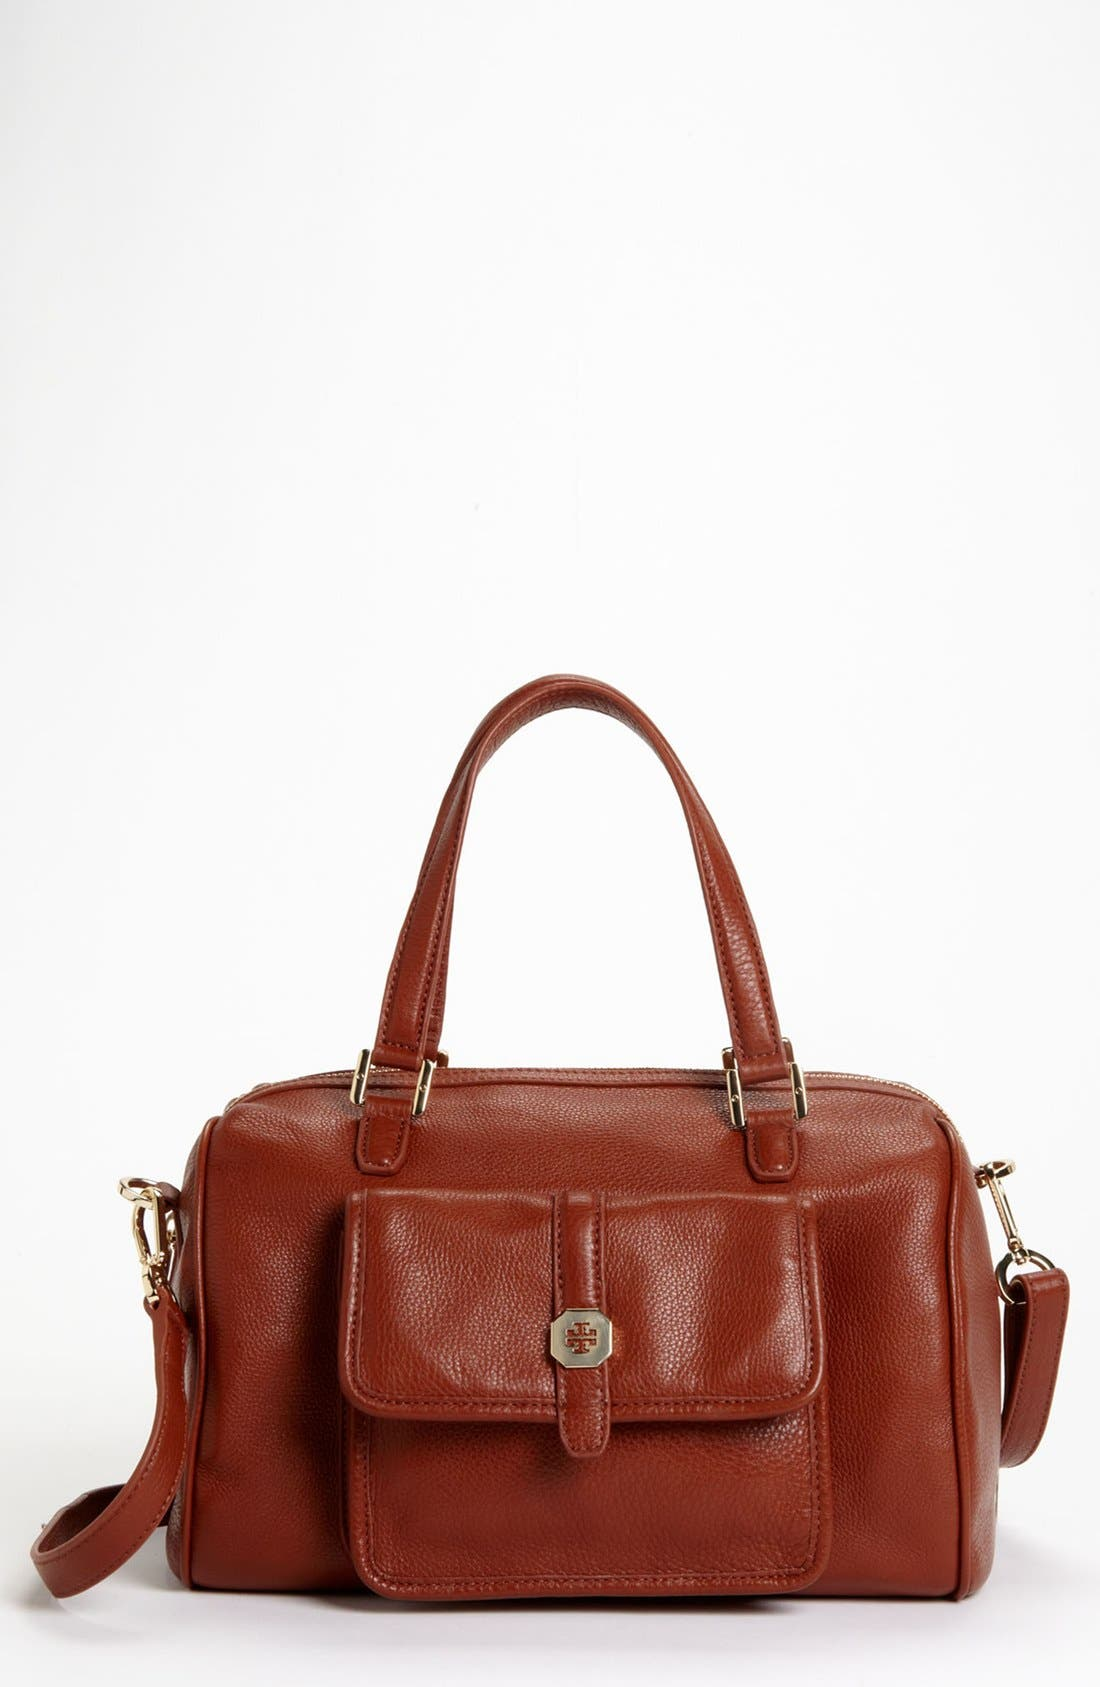 Alternate Image 1 Selected - Tory Burch 'Clay' Leather Satchel, Medium